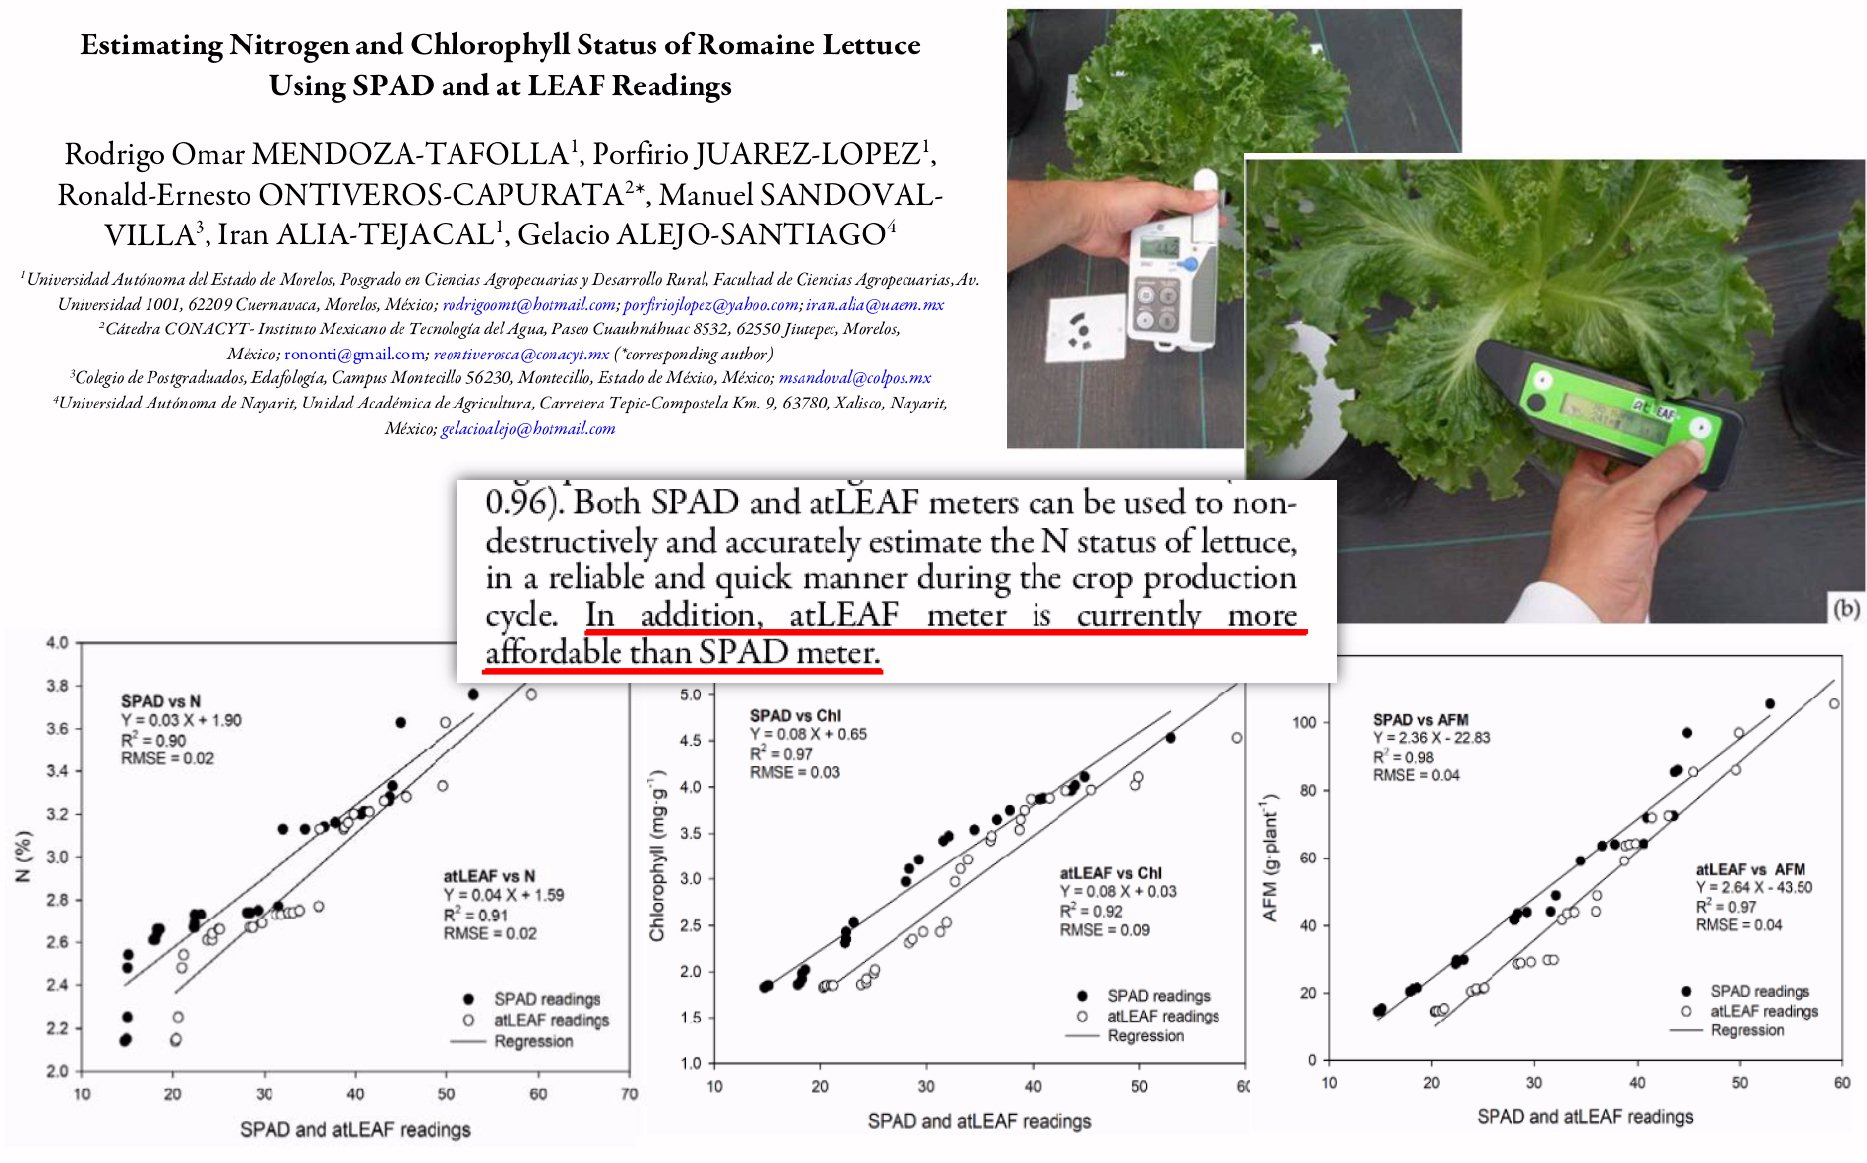 Estimating Nitrogen and Chlorophyll Status of Romaine Lettuce using SPAD and atLEAF readings